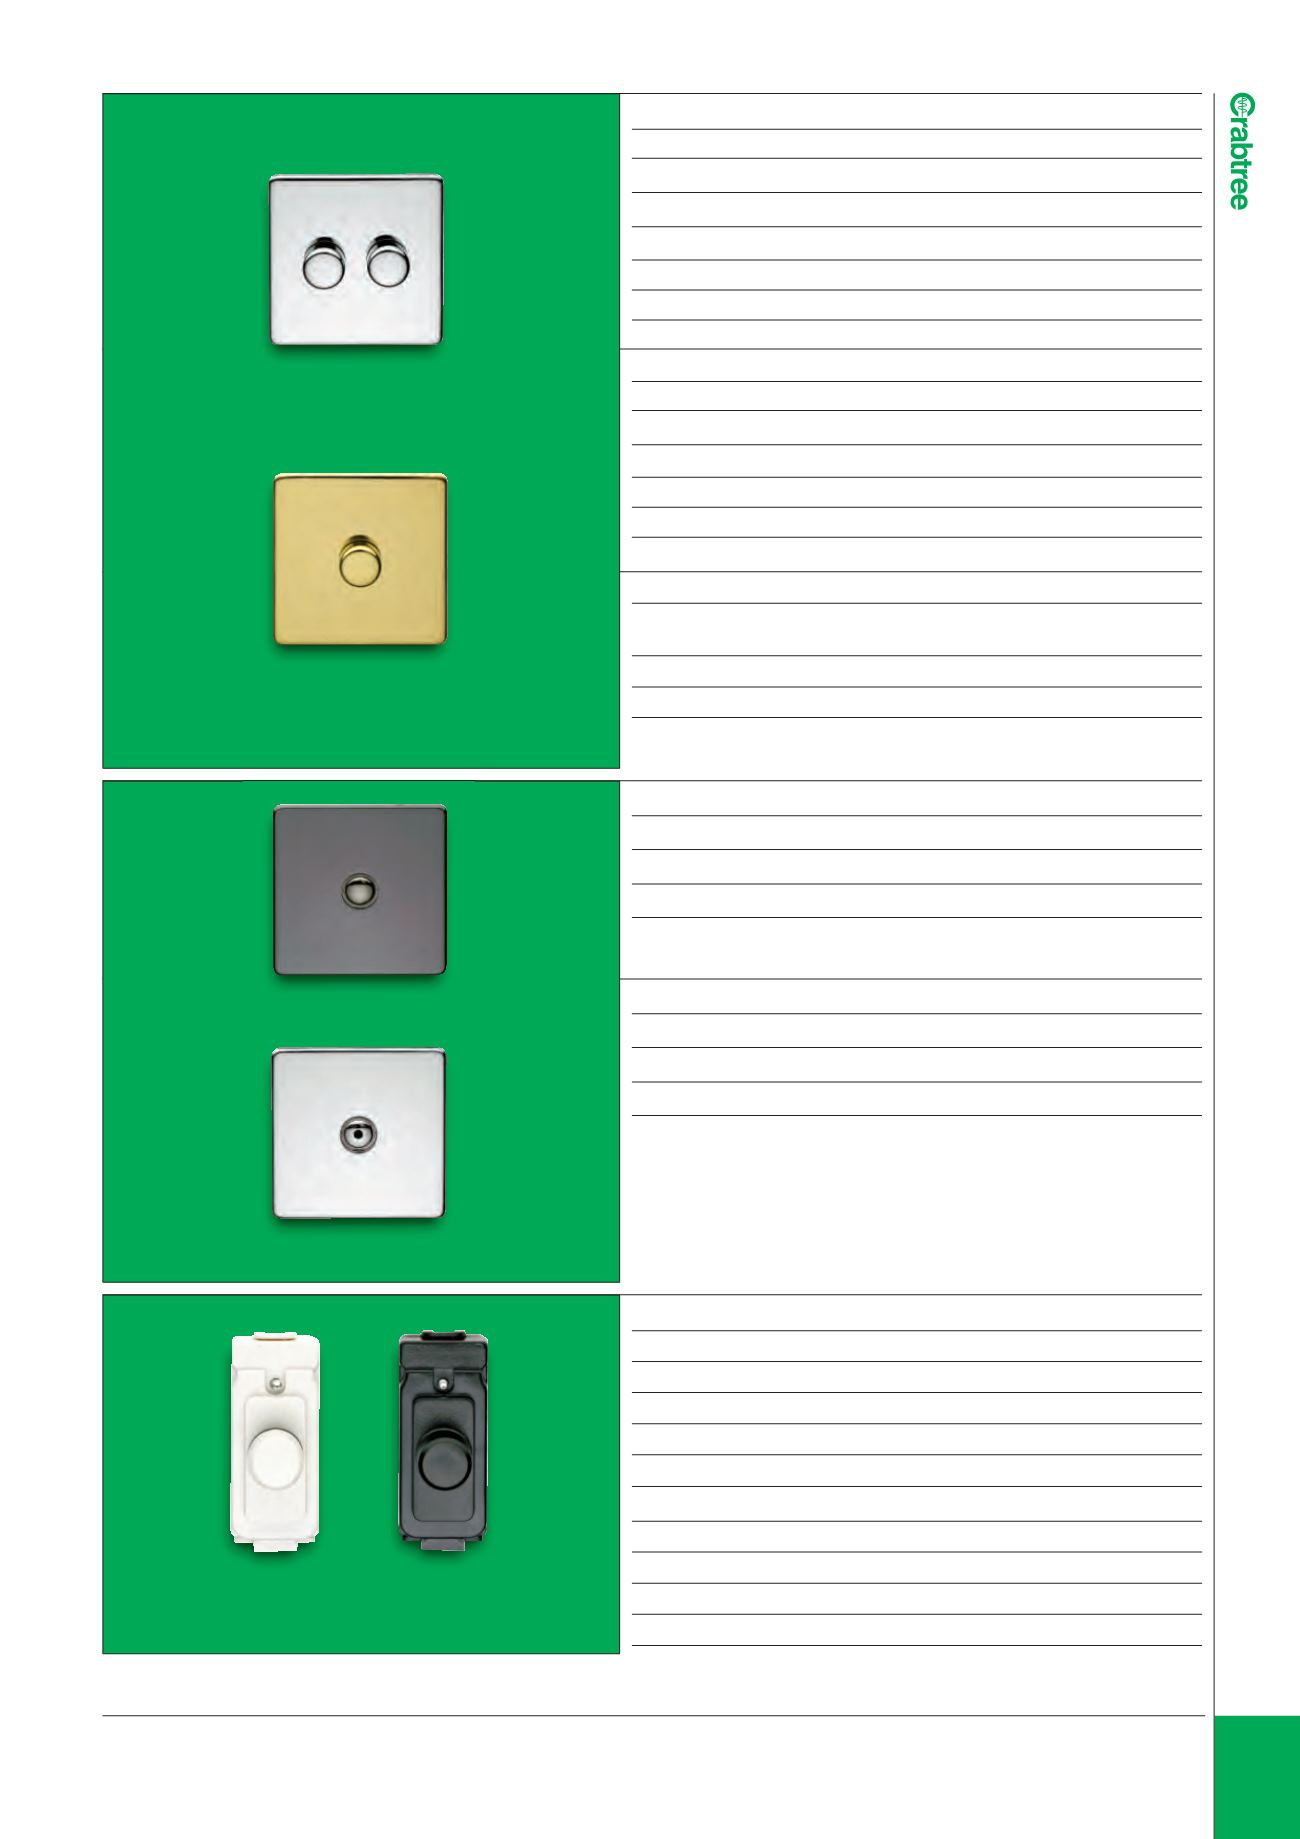 Crabtree Electrical Wiring Accessories A Dimmer Switch Page Background